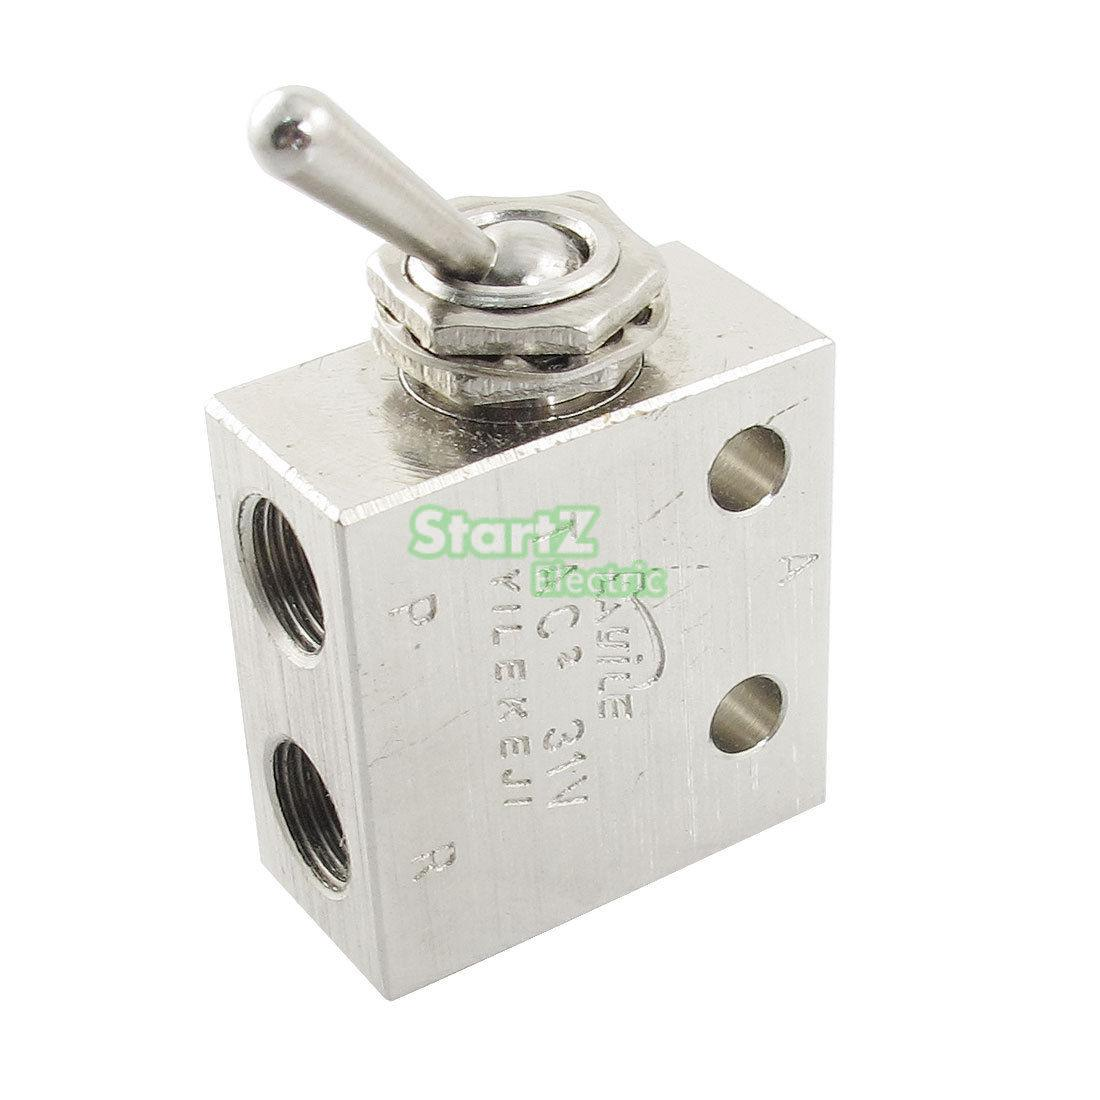 1/8PT Thread 2 Position 3 Way Rectangle Mechanical Air Pneumatic Valve TAC2-31V 1 8pt thread 2 position 3 way rectangle mechanical air pneumatic valve tac2 31v